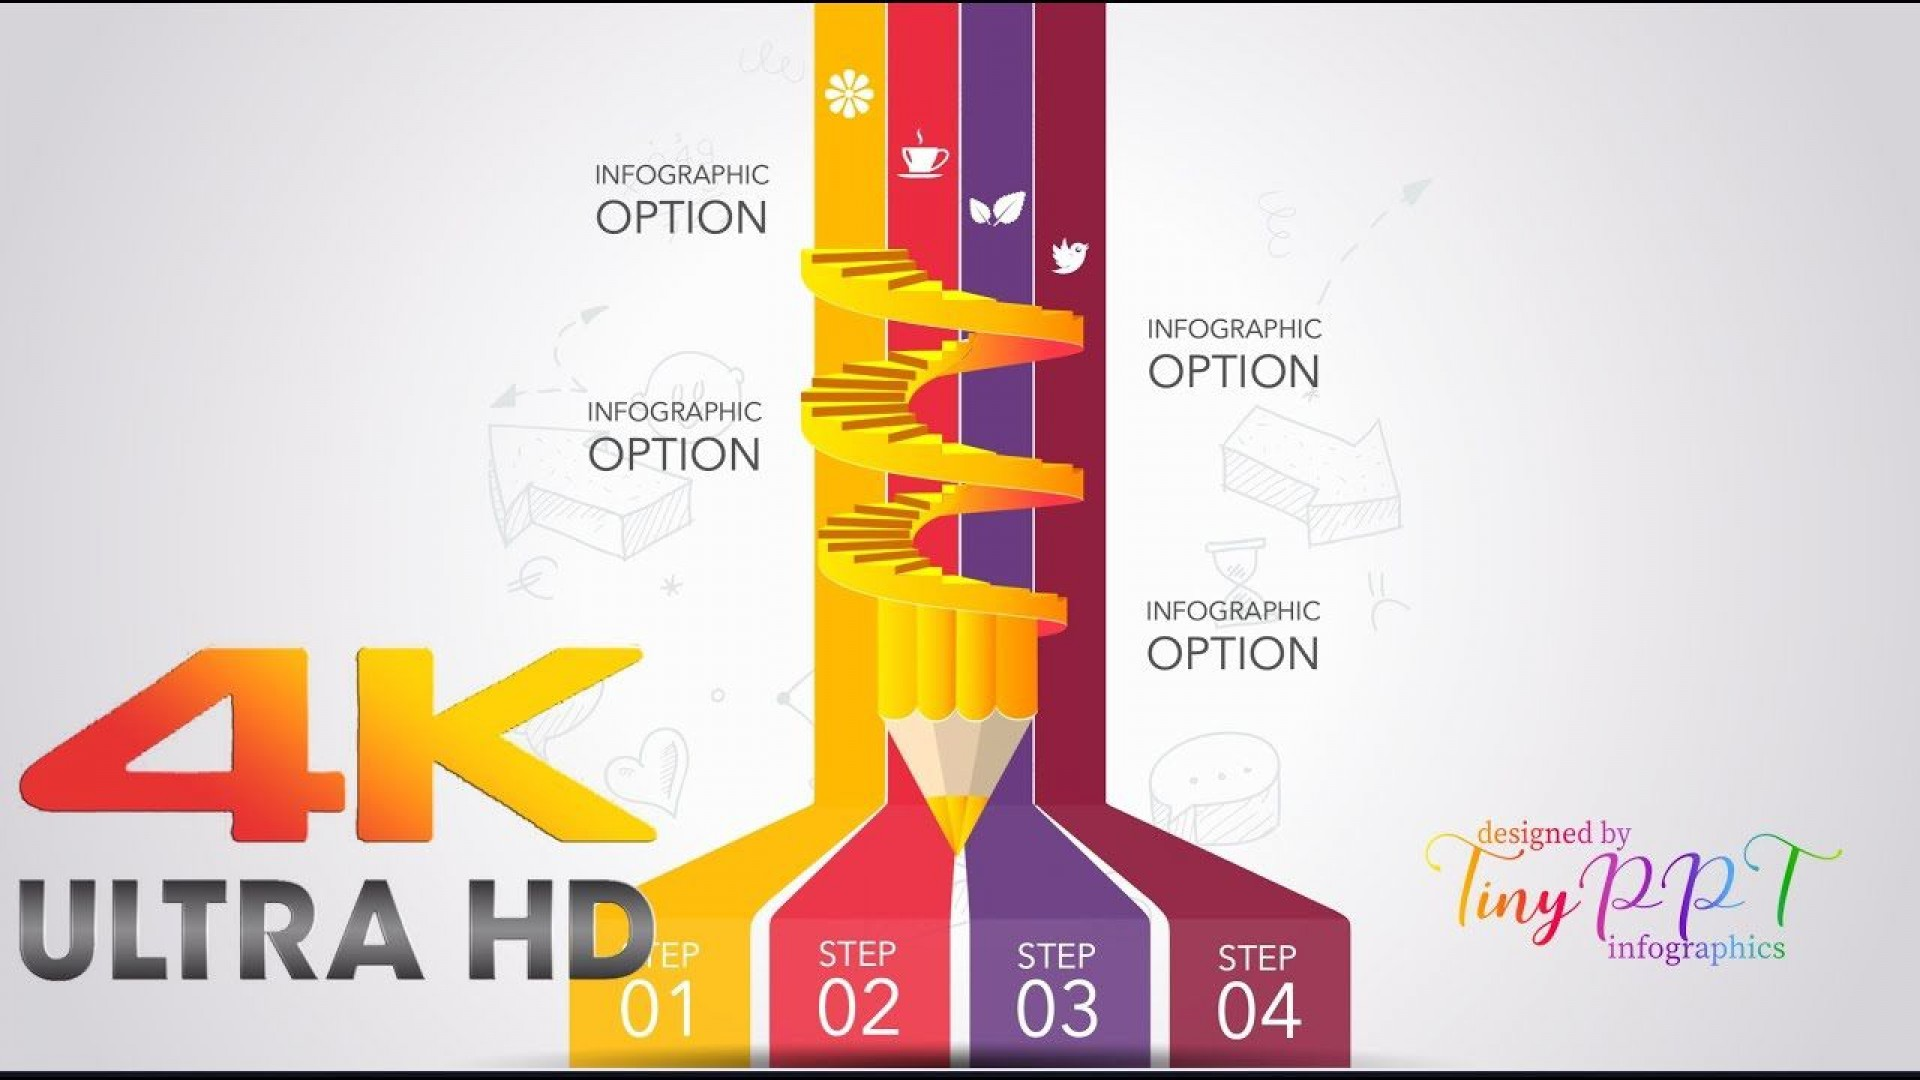 007 Staggering Free 3d Animated Powerpoint Template Download High Def  2017 2016 Tinyppt1920